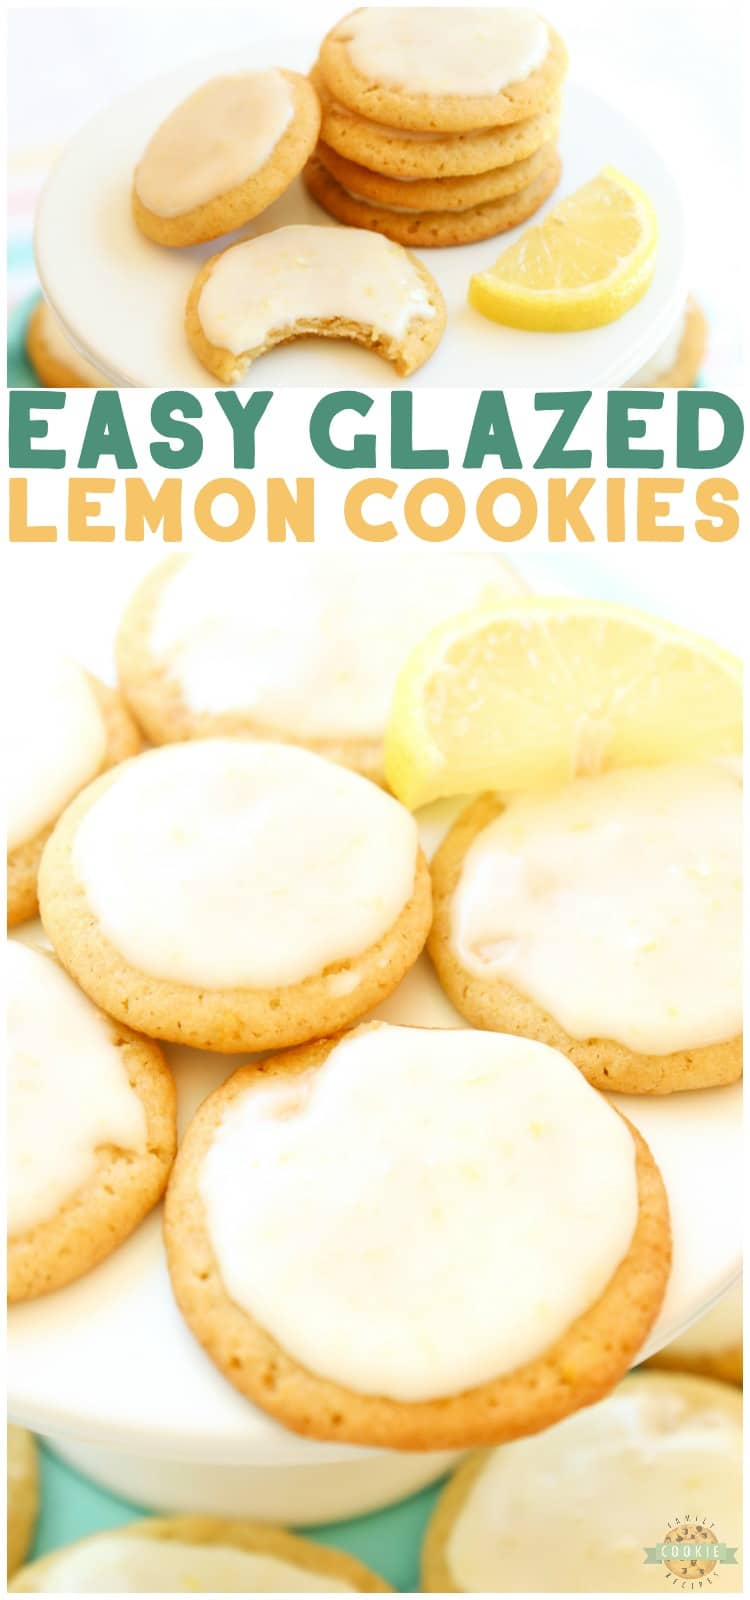 Glazed Lemon Cookiesare sweet frosted lemon butter cookies made with fresh lemons. This delicious lemon cookie recipeis the perfect amount of sweet and tart. via @familycookierecipes